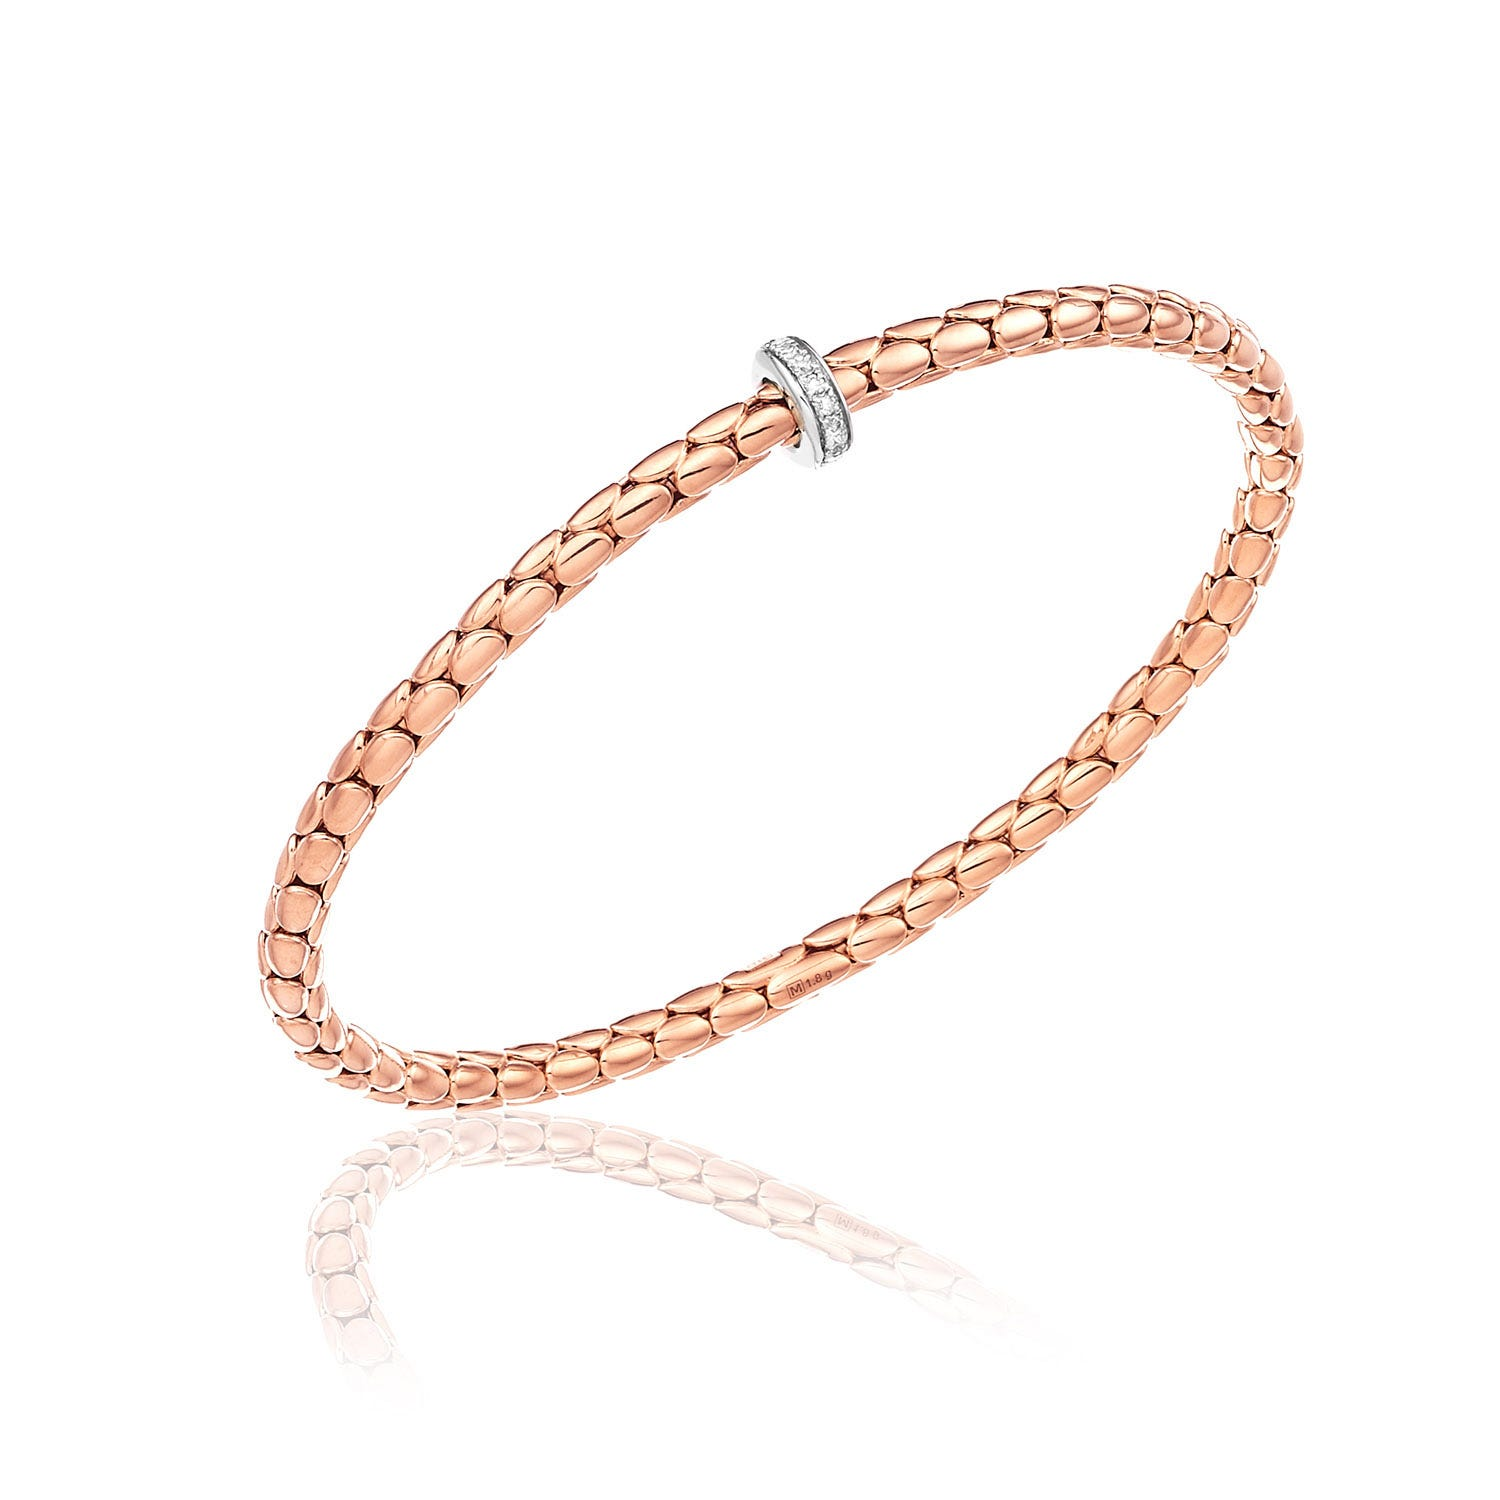 Chimento 18ct Rose Gold and Diamond Stretch Spring Thin Bracelet